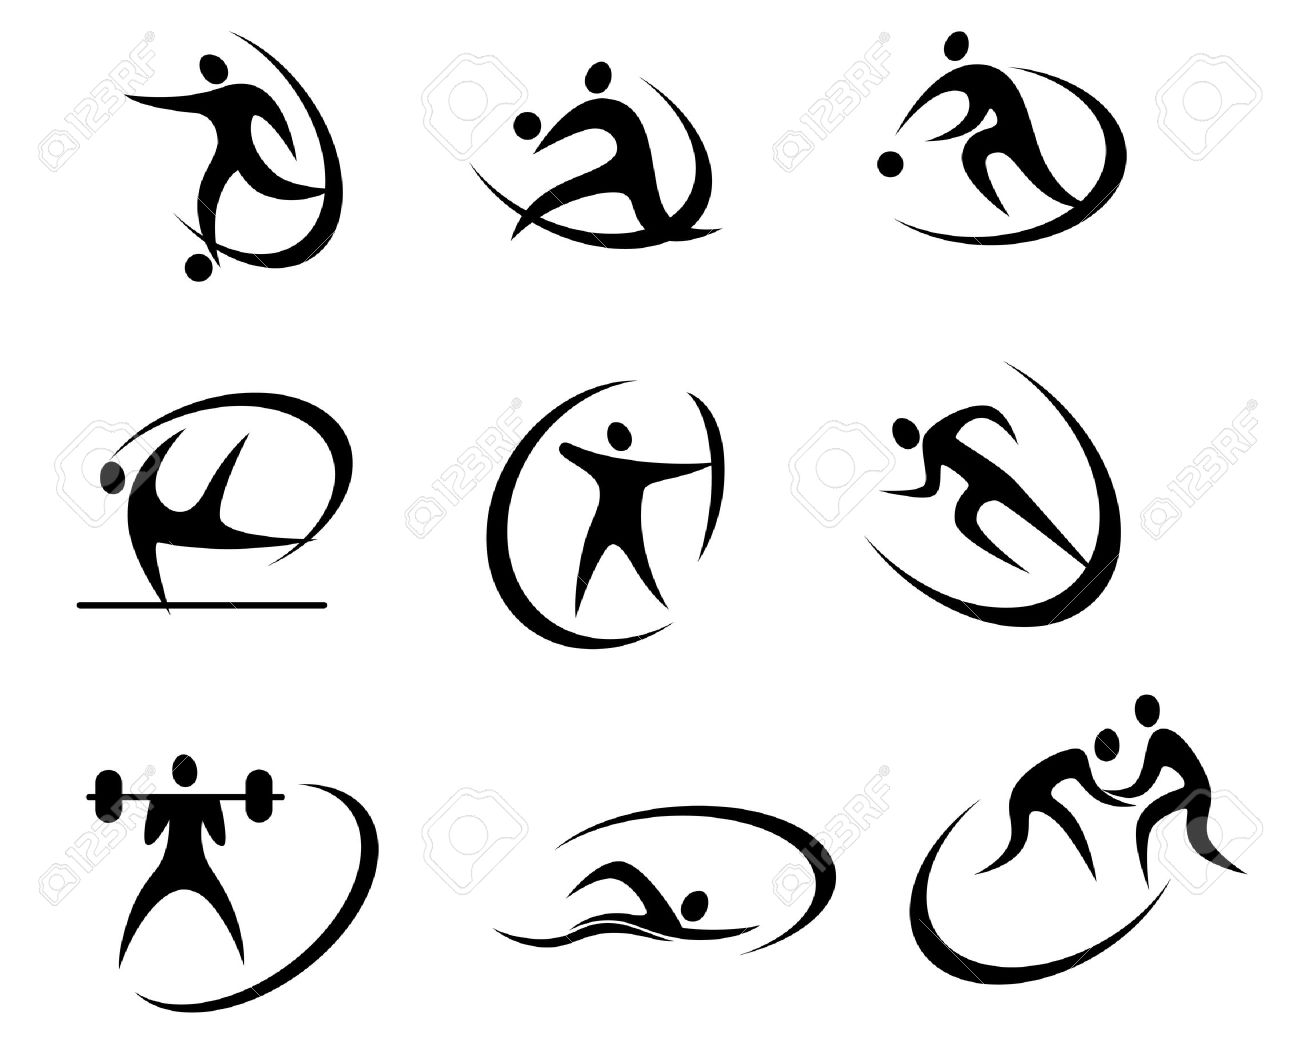 Different kinds of sports symbols for competition and tournament different kinds of sports symbols for competition and tournament design stock vector 21528957 buycottarizona